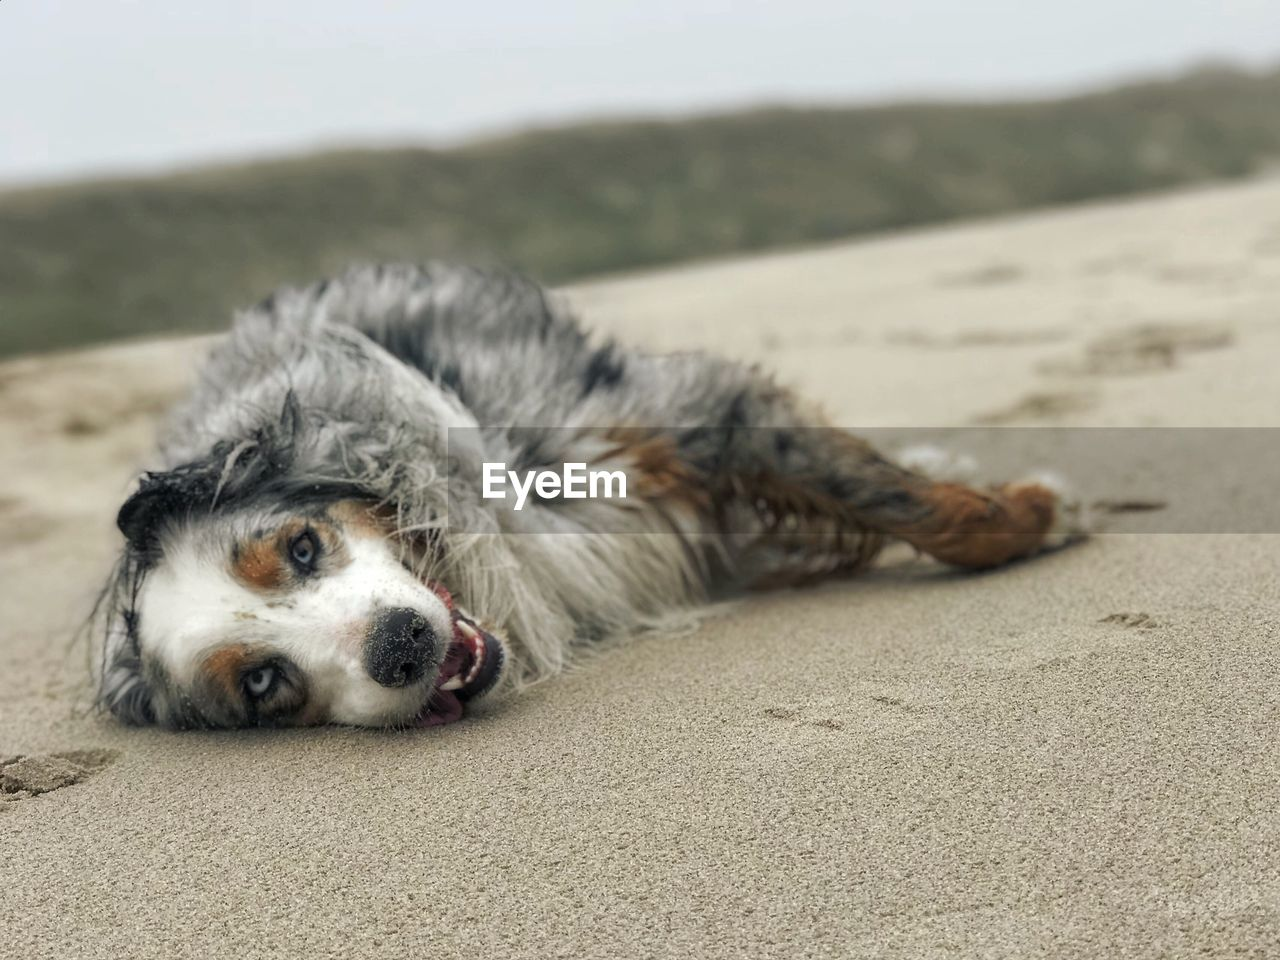 one animal, animal themes, animal, domestic, mammal, domestic animals, canine, pets, dog, relaxation, vertebrate, lying down, no people, resting, portrait, focus on foreground, sand, day, animal body part, looking at camera, animal head